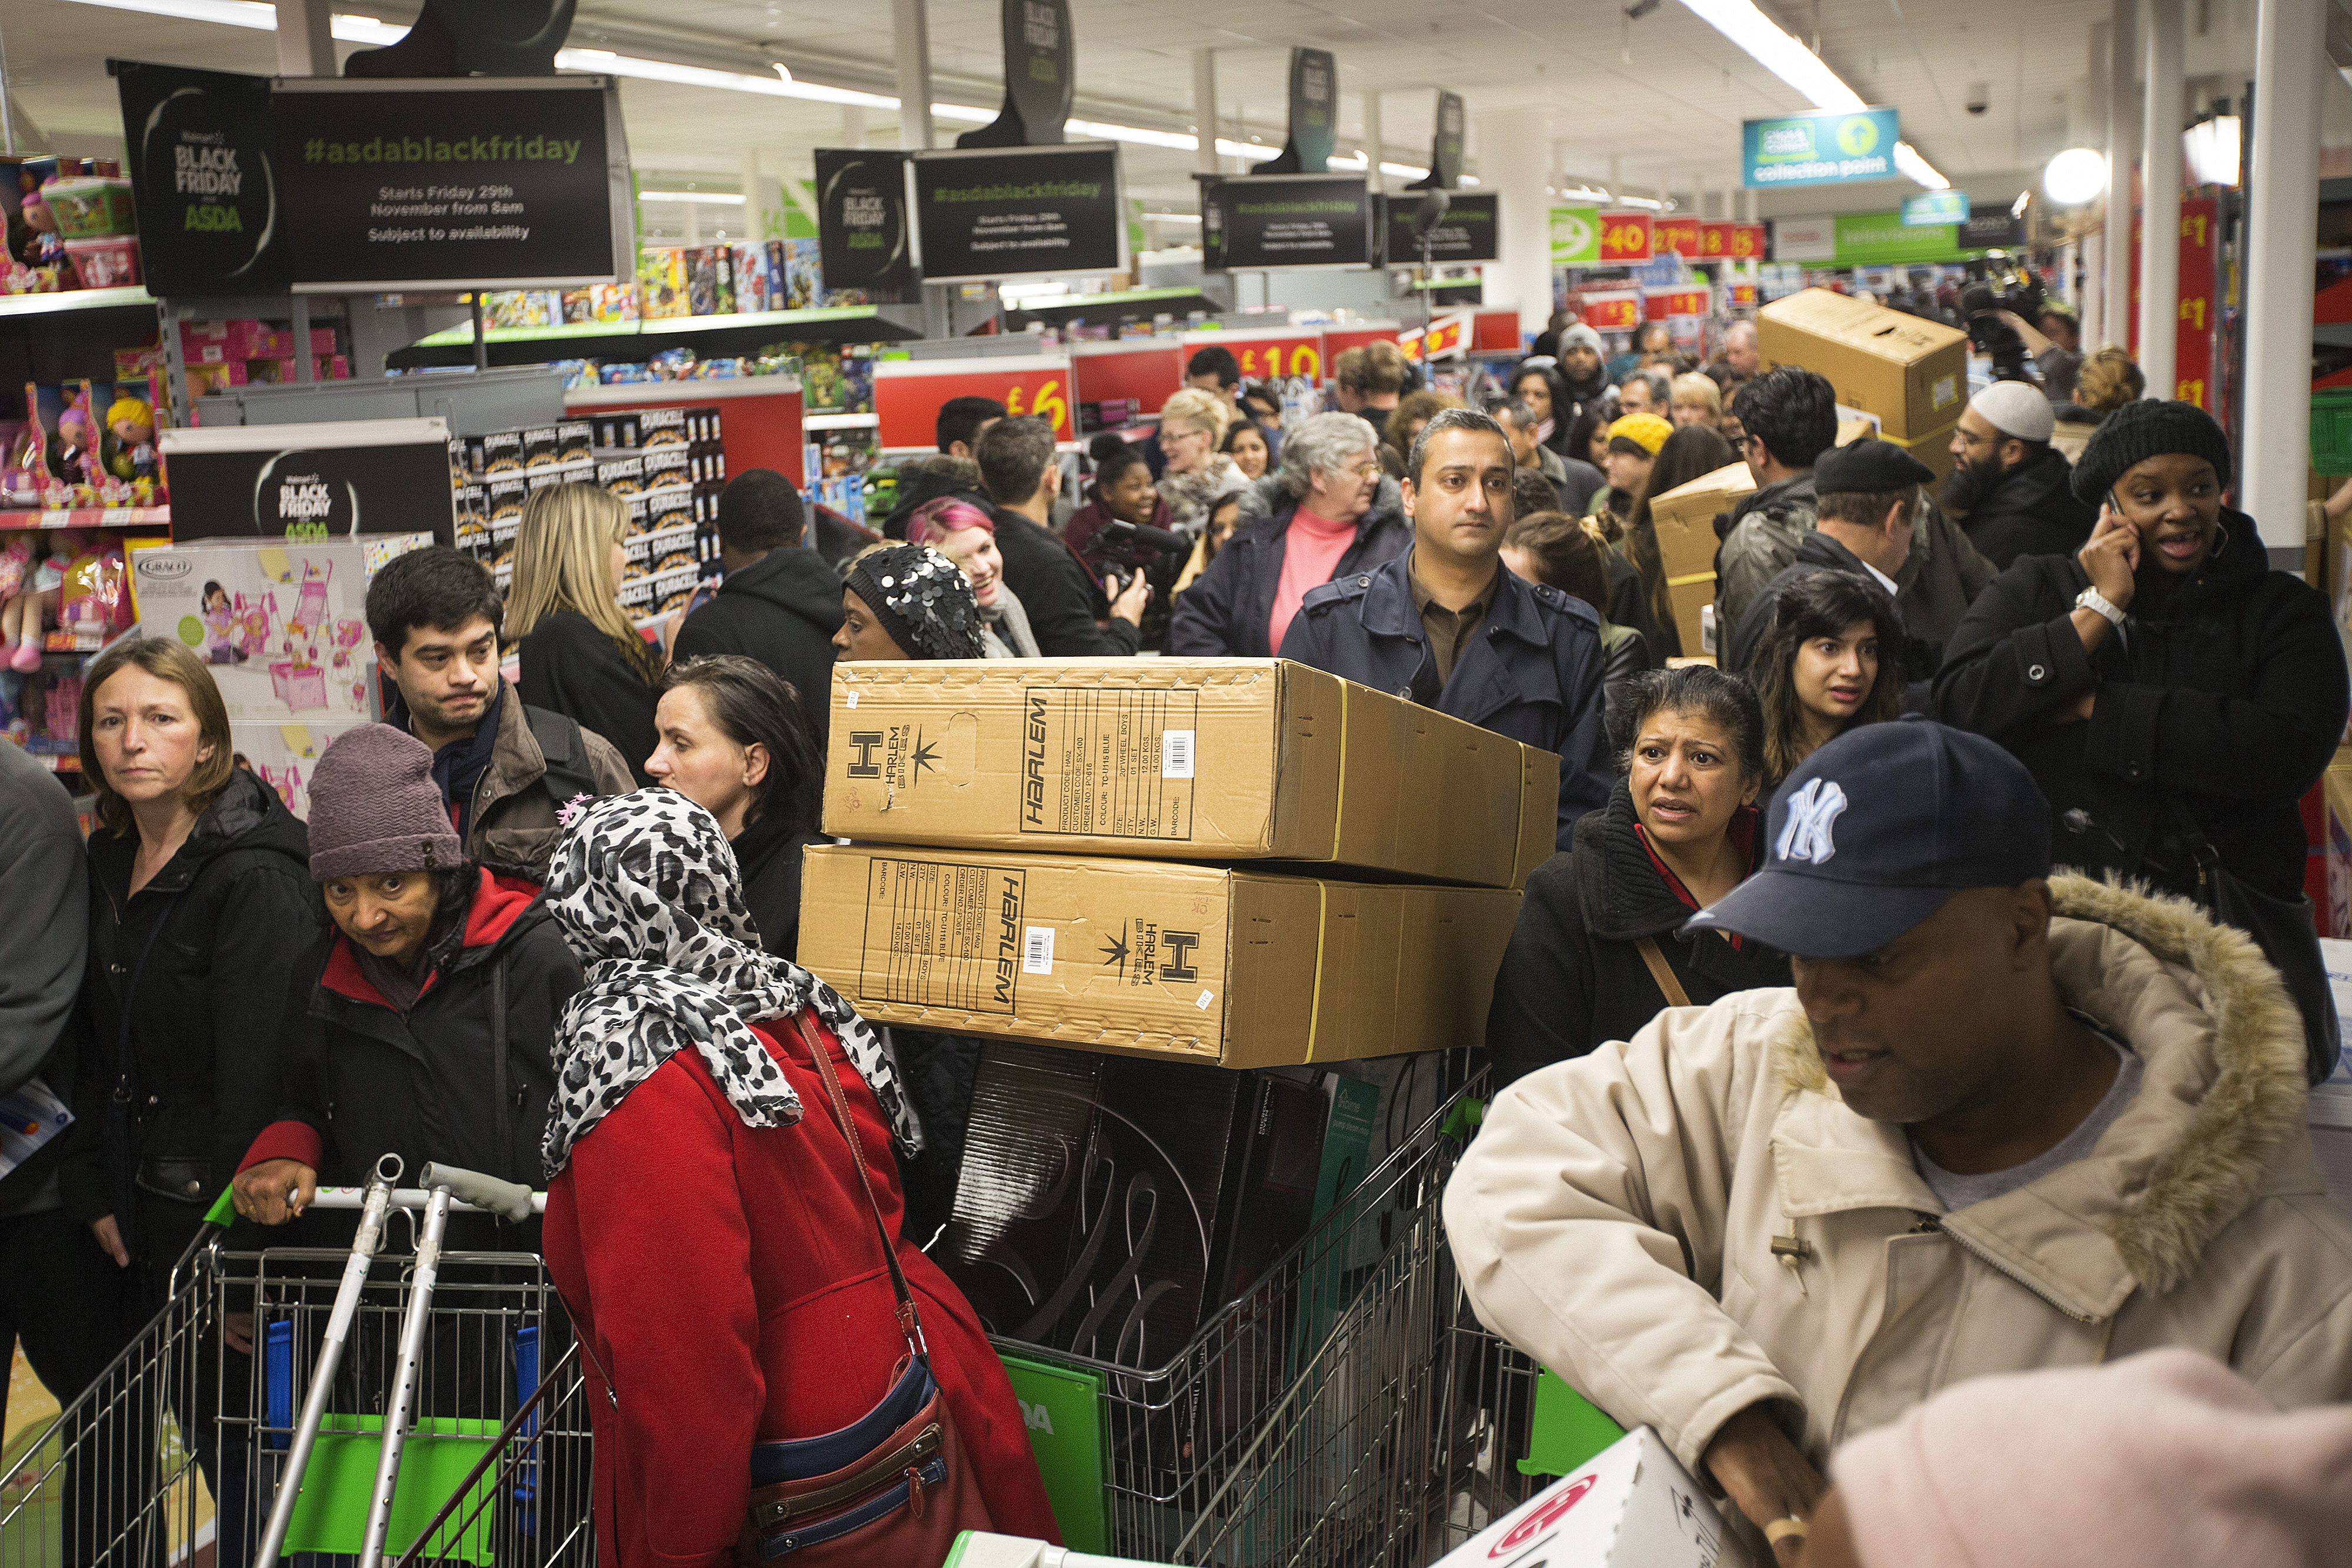 Customers push loaded shopping carts through crowded aisles as they look for bargains during a Black Friday discount sale inside an Asda supermarket in Wembley, London, U.K., on Friday, Nov. 29, 2013.